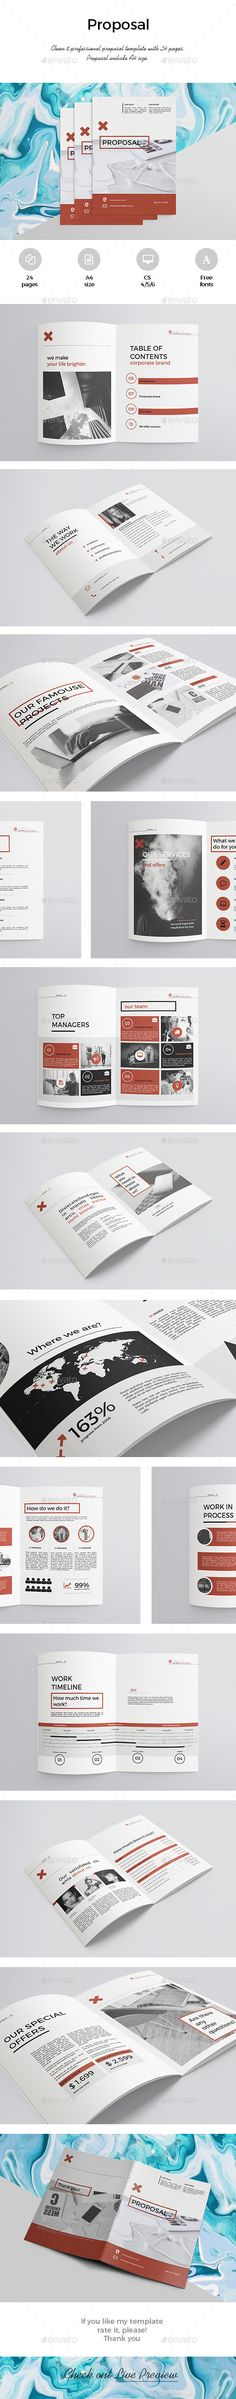 Facebook Marketing and Advertising Proposal Facebook marketing - advertising proposal template